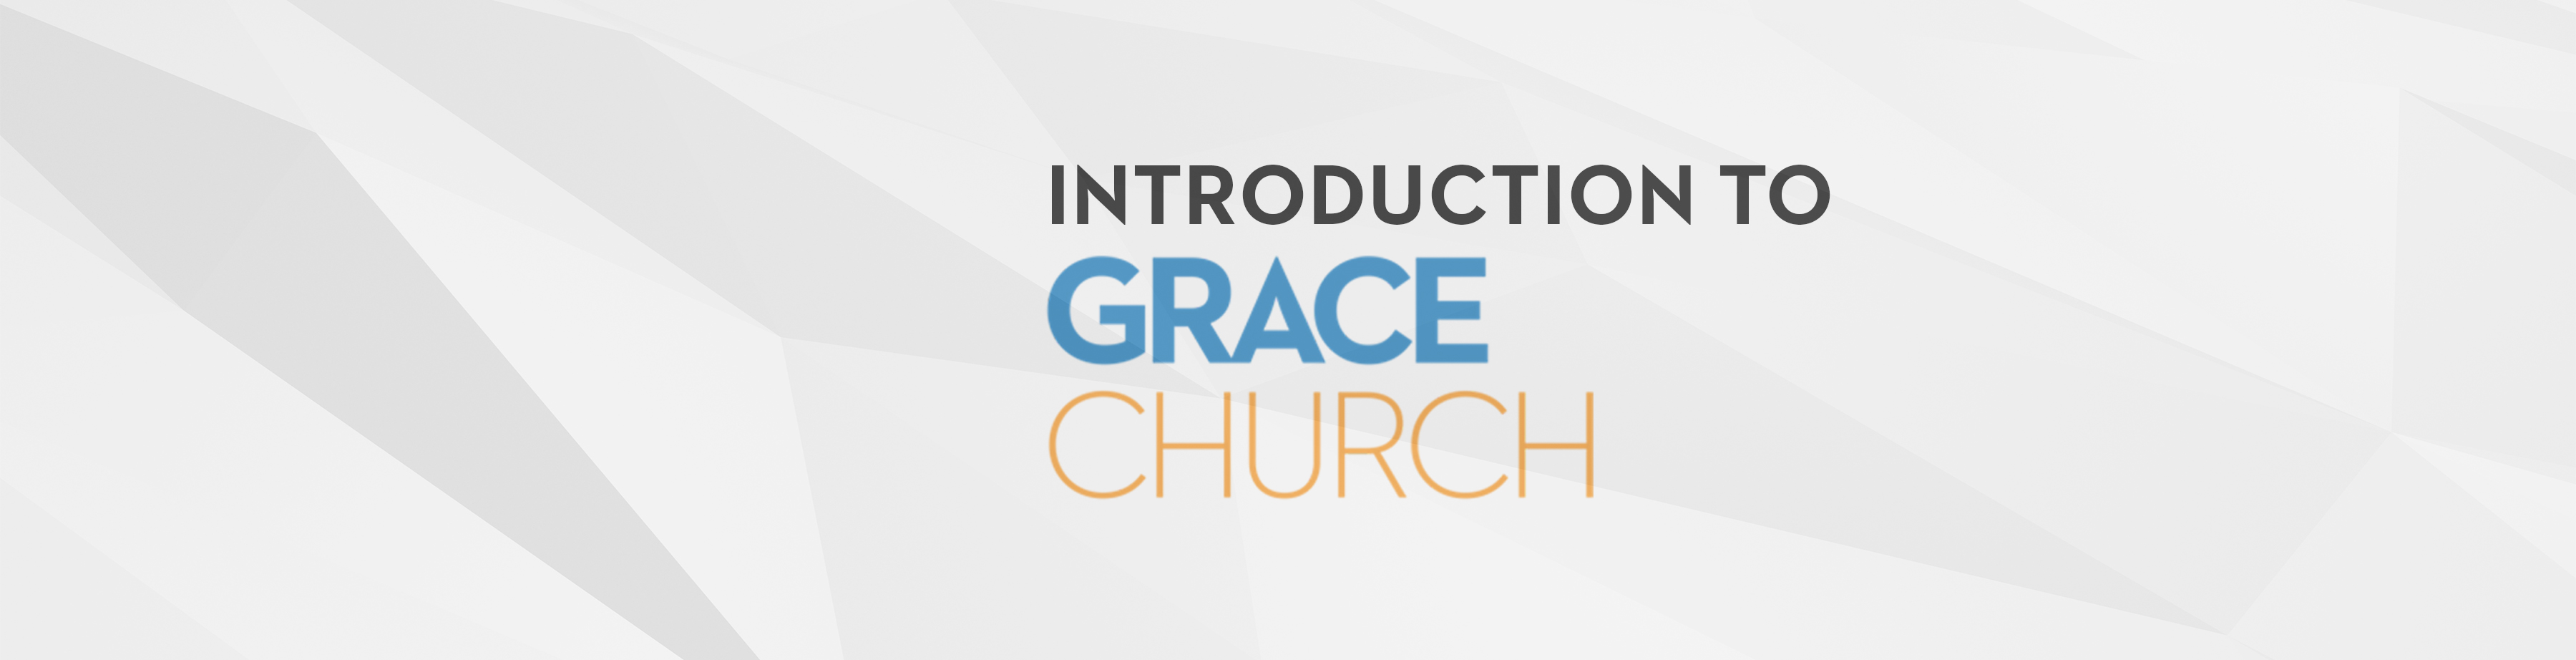 Intro to Grace WEB HEADER image